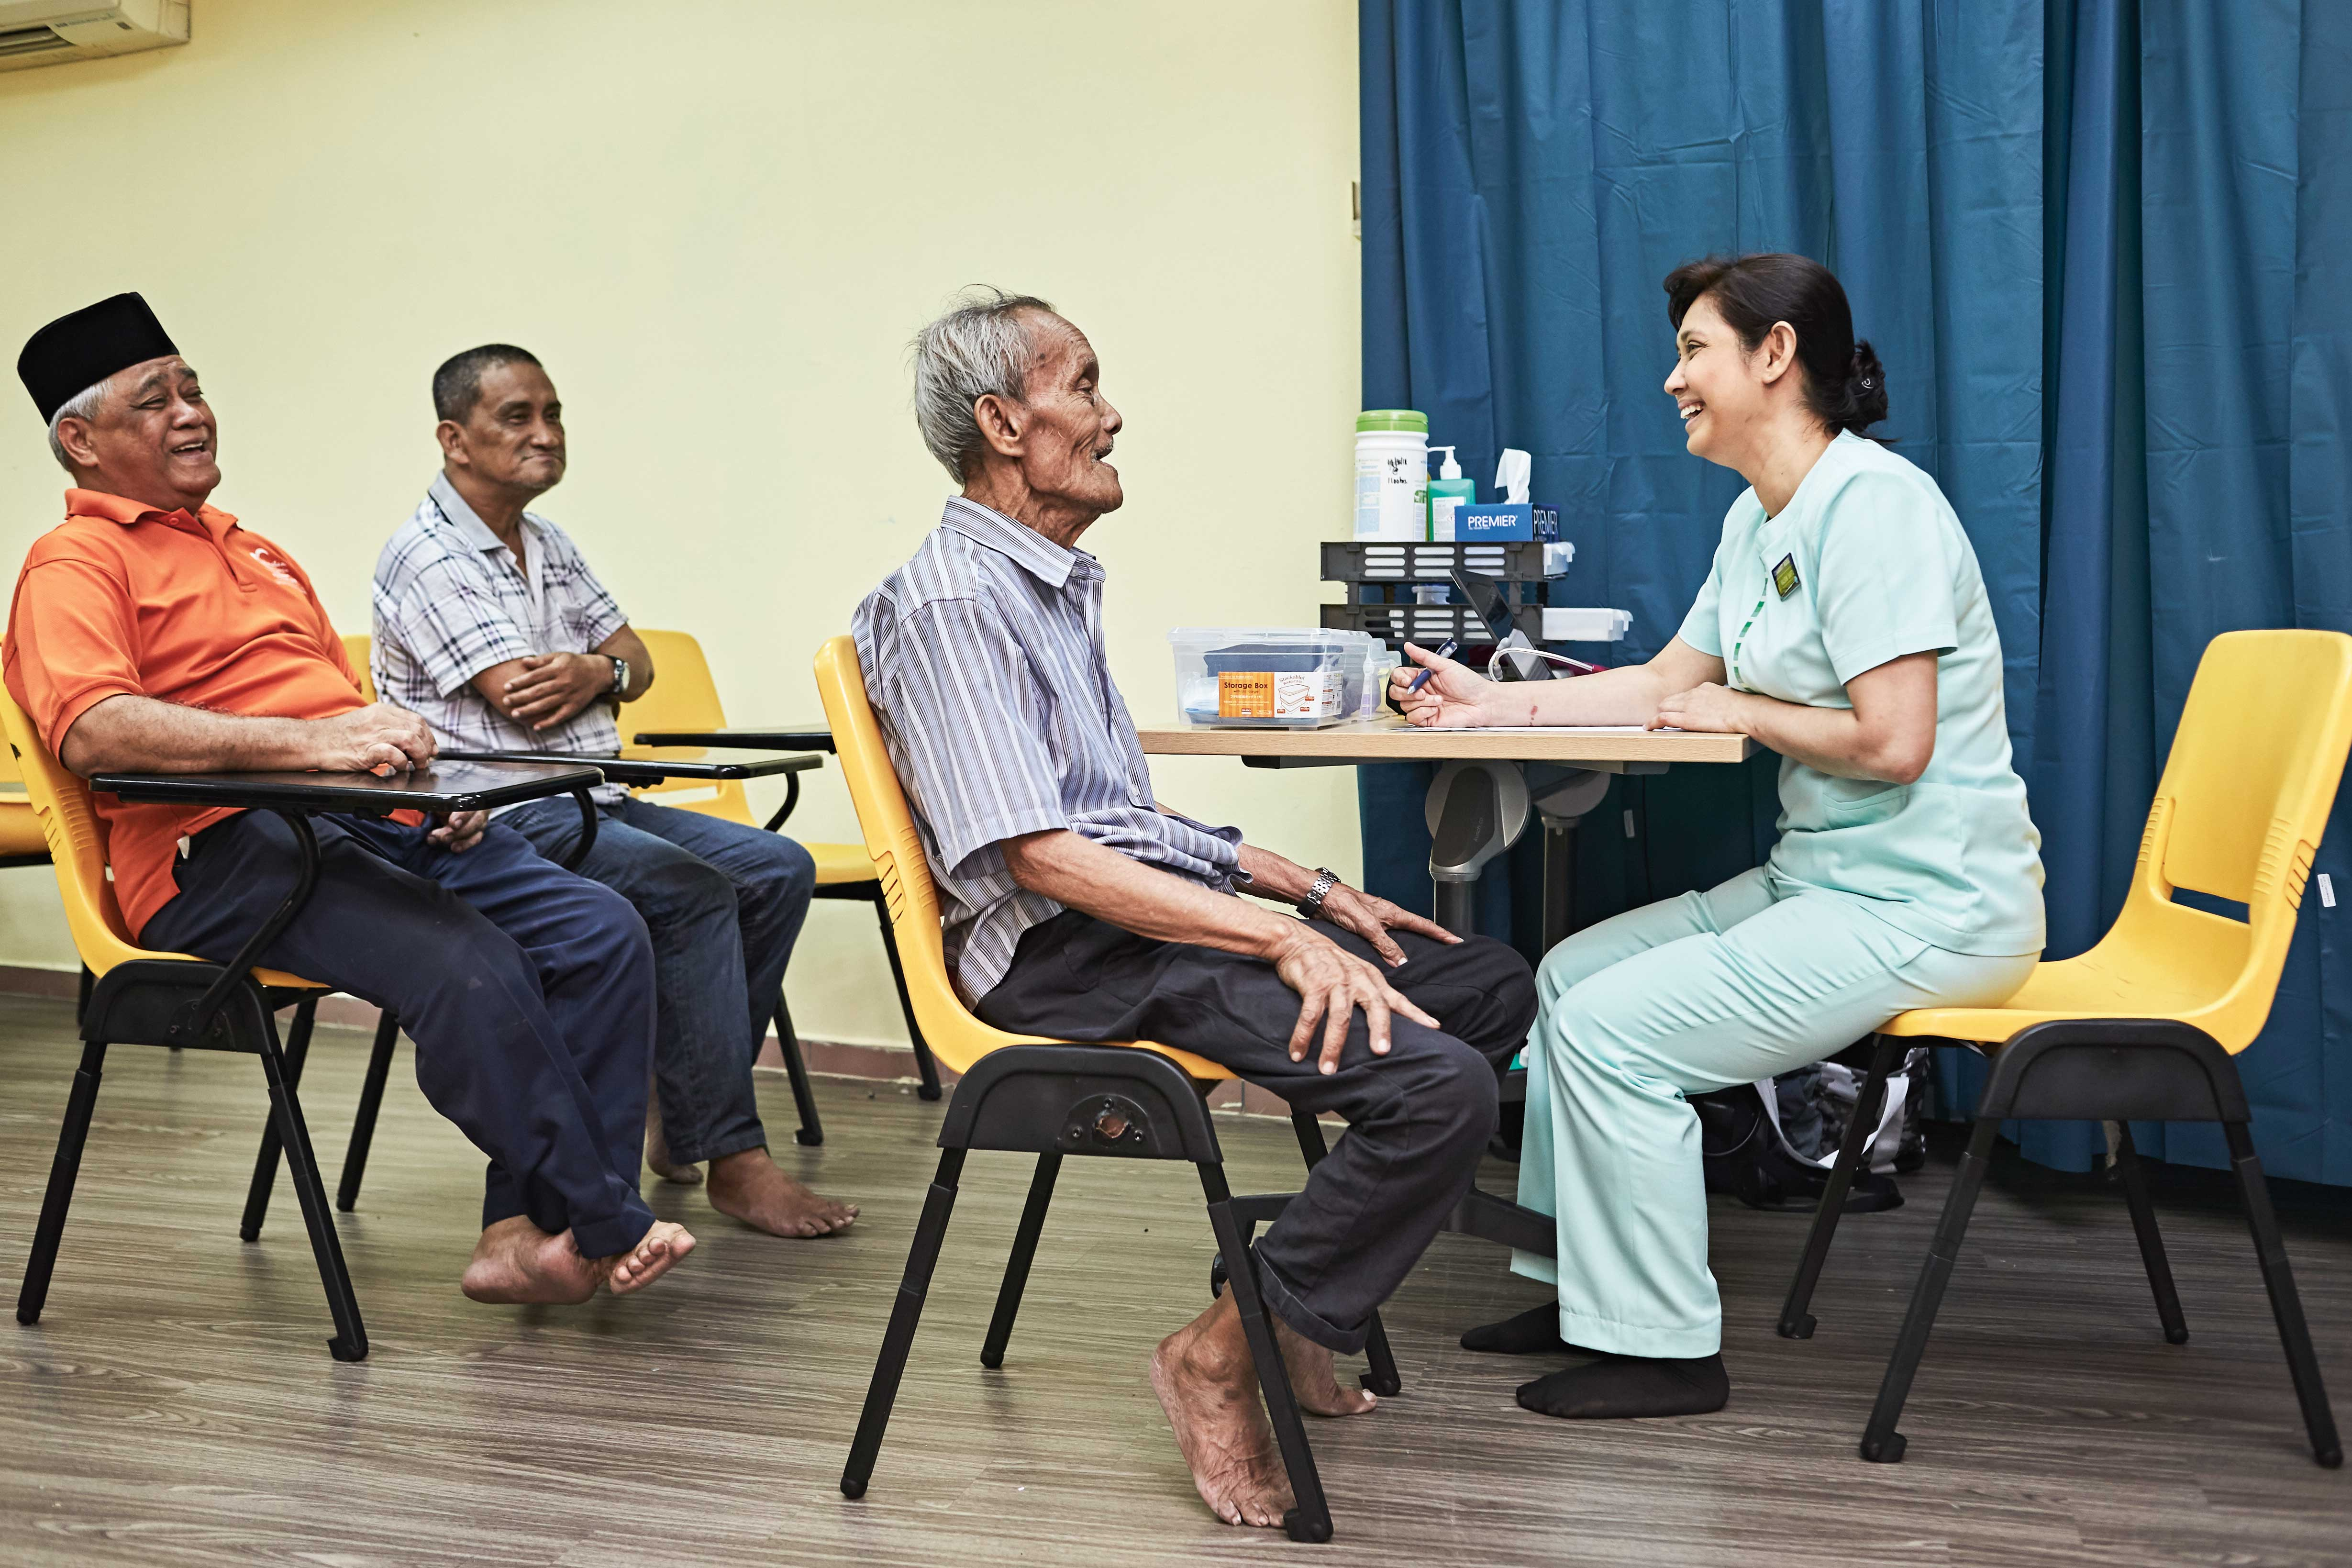 SGH pulls together organisations in the community as partners in health. Together, they create a strong safety net for residents and patients, ensuring they stay healthy and age well at home.